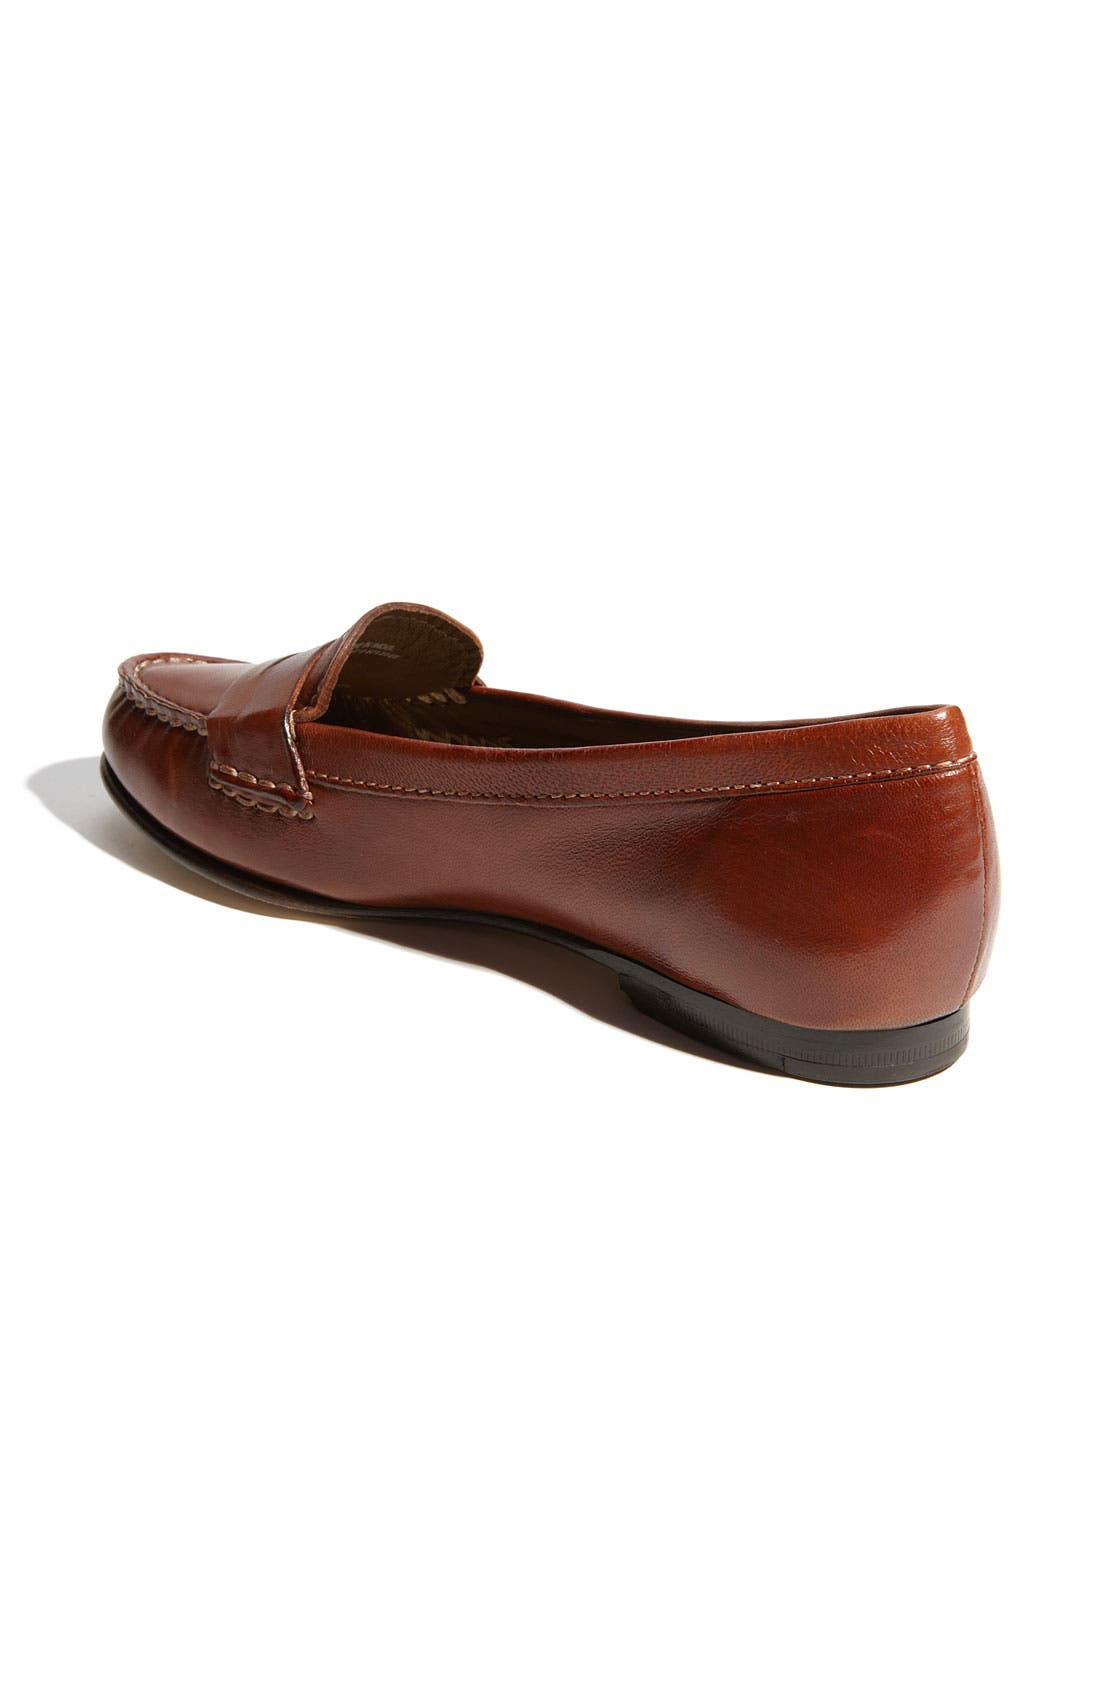 Alternate Image 2  - Cole Haan 'Air Sloane' Leather Loafer